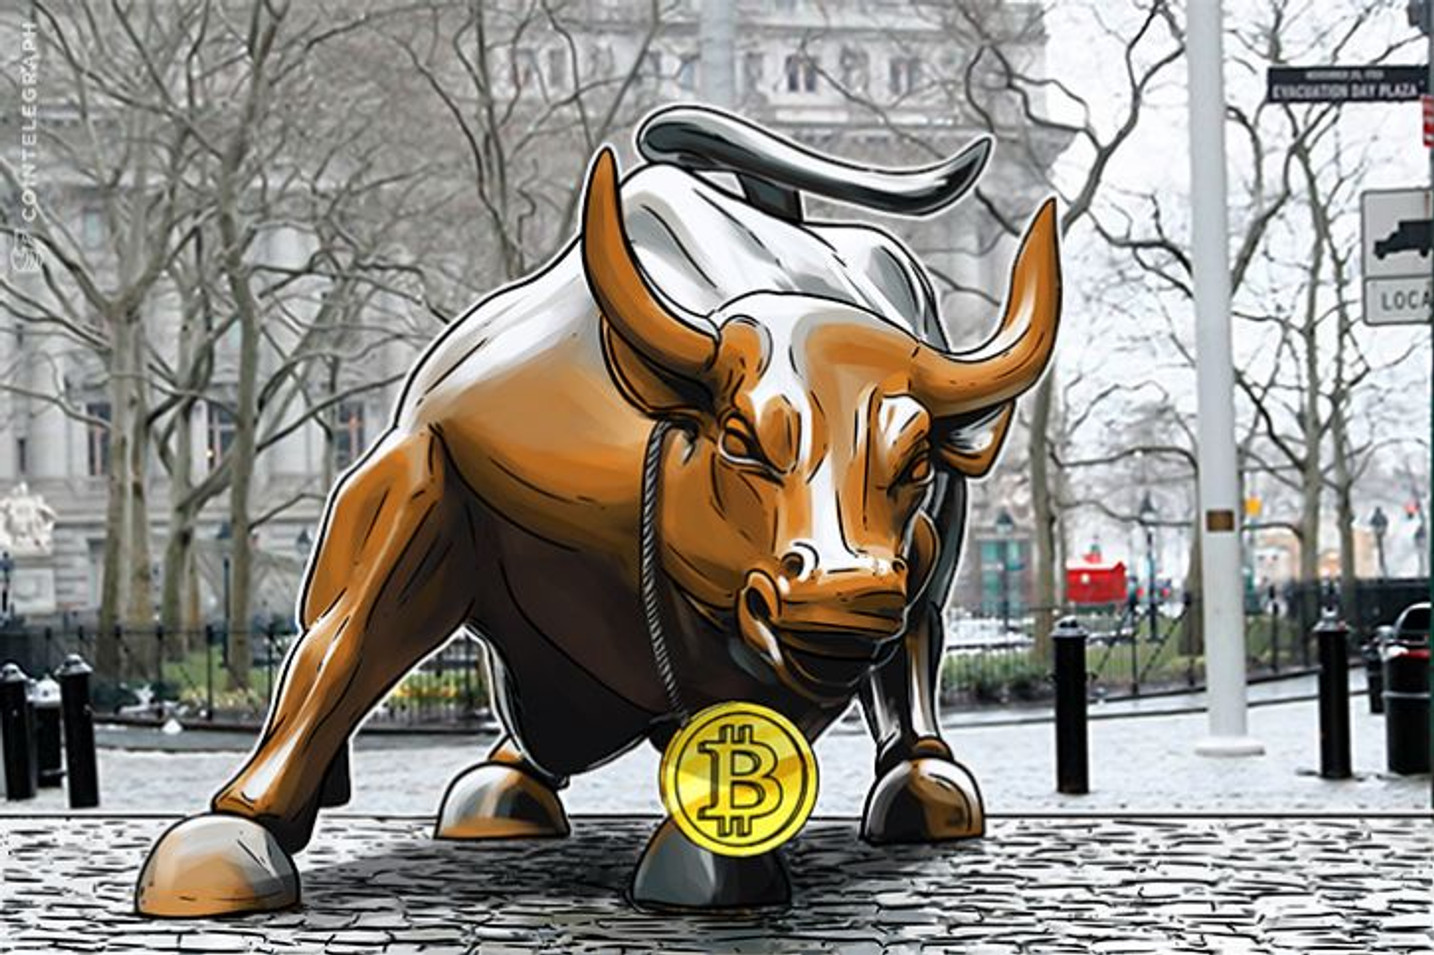 Wall Street Expert Says BTC Growth Is Bringing Investors To Stock Market